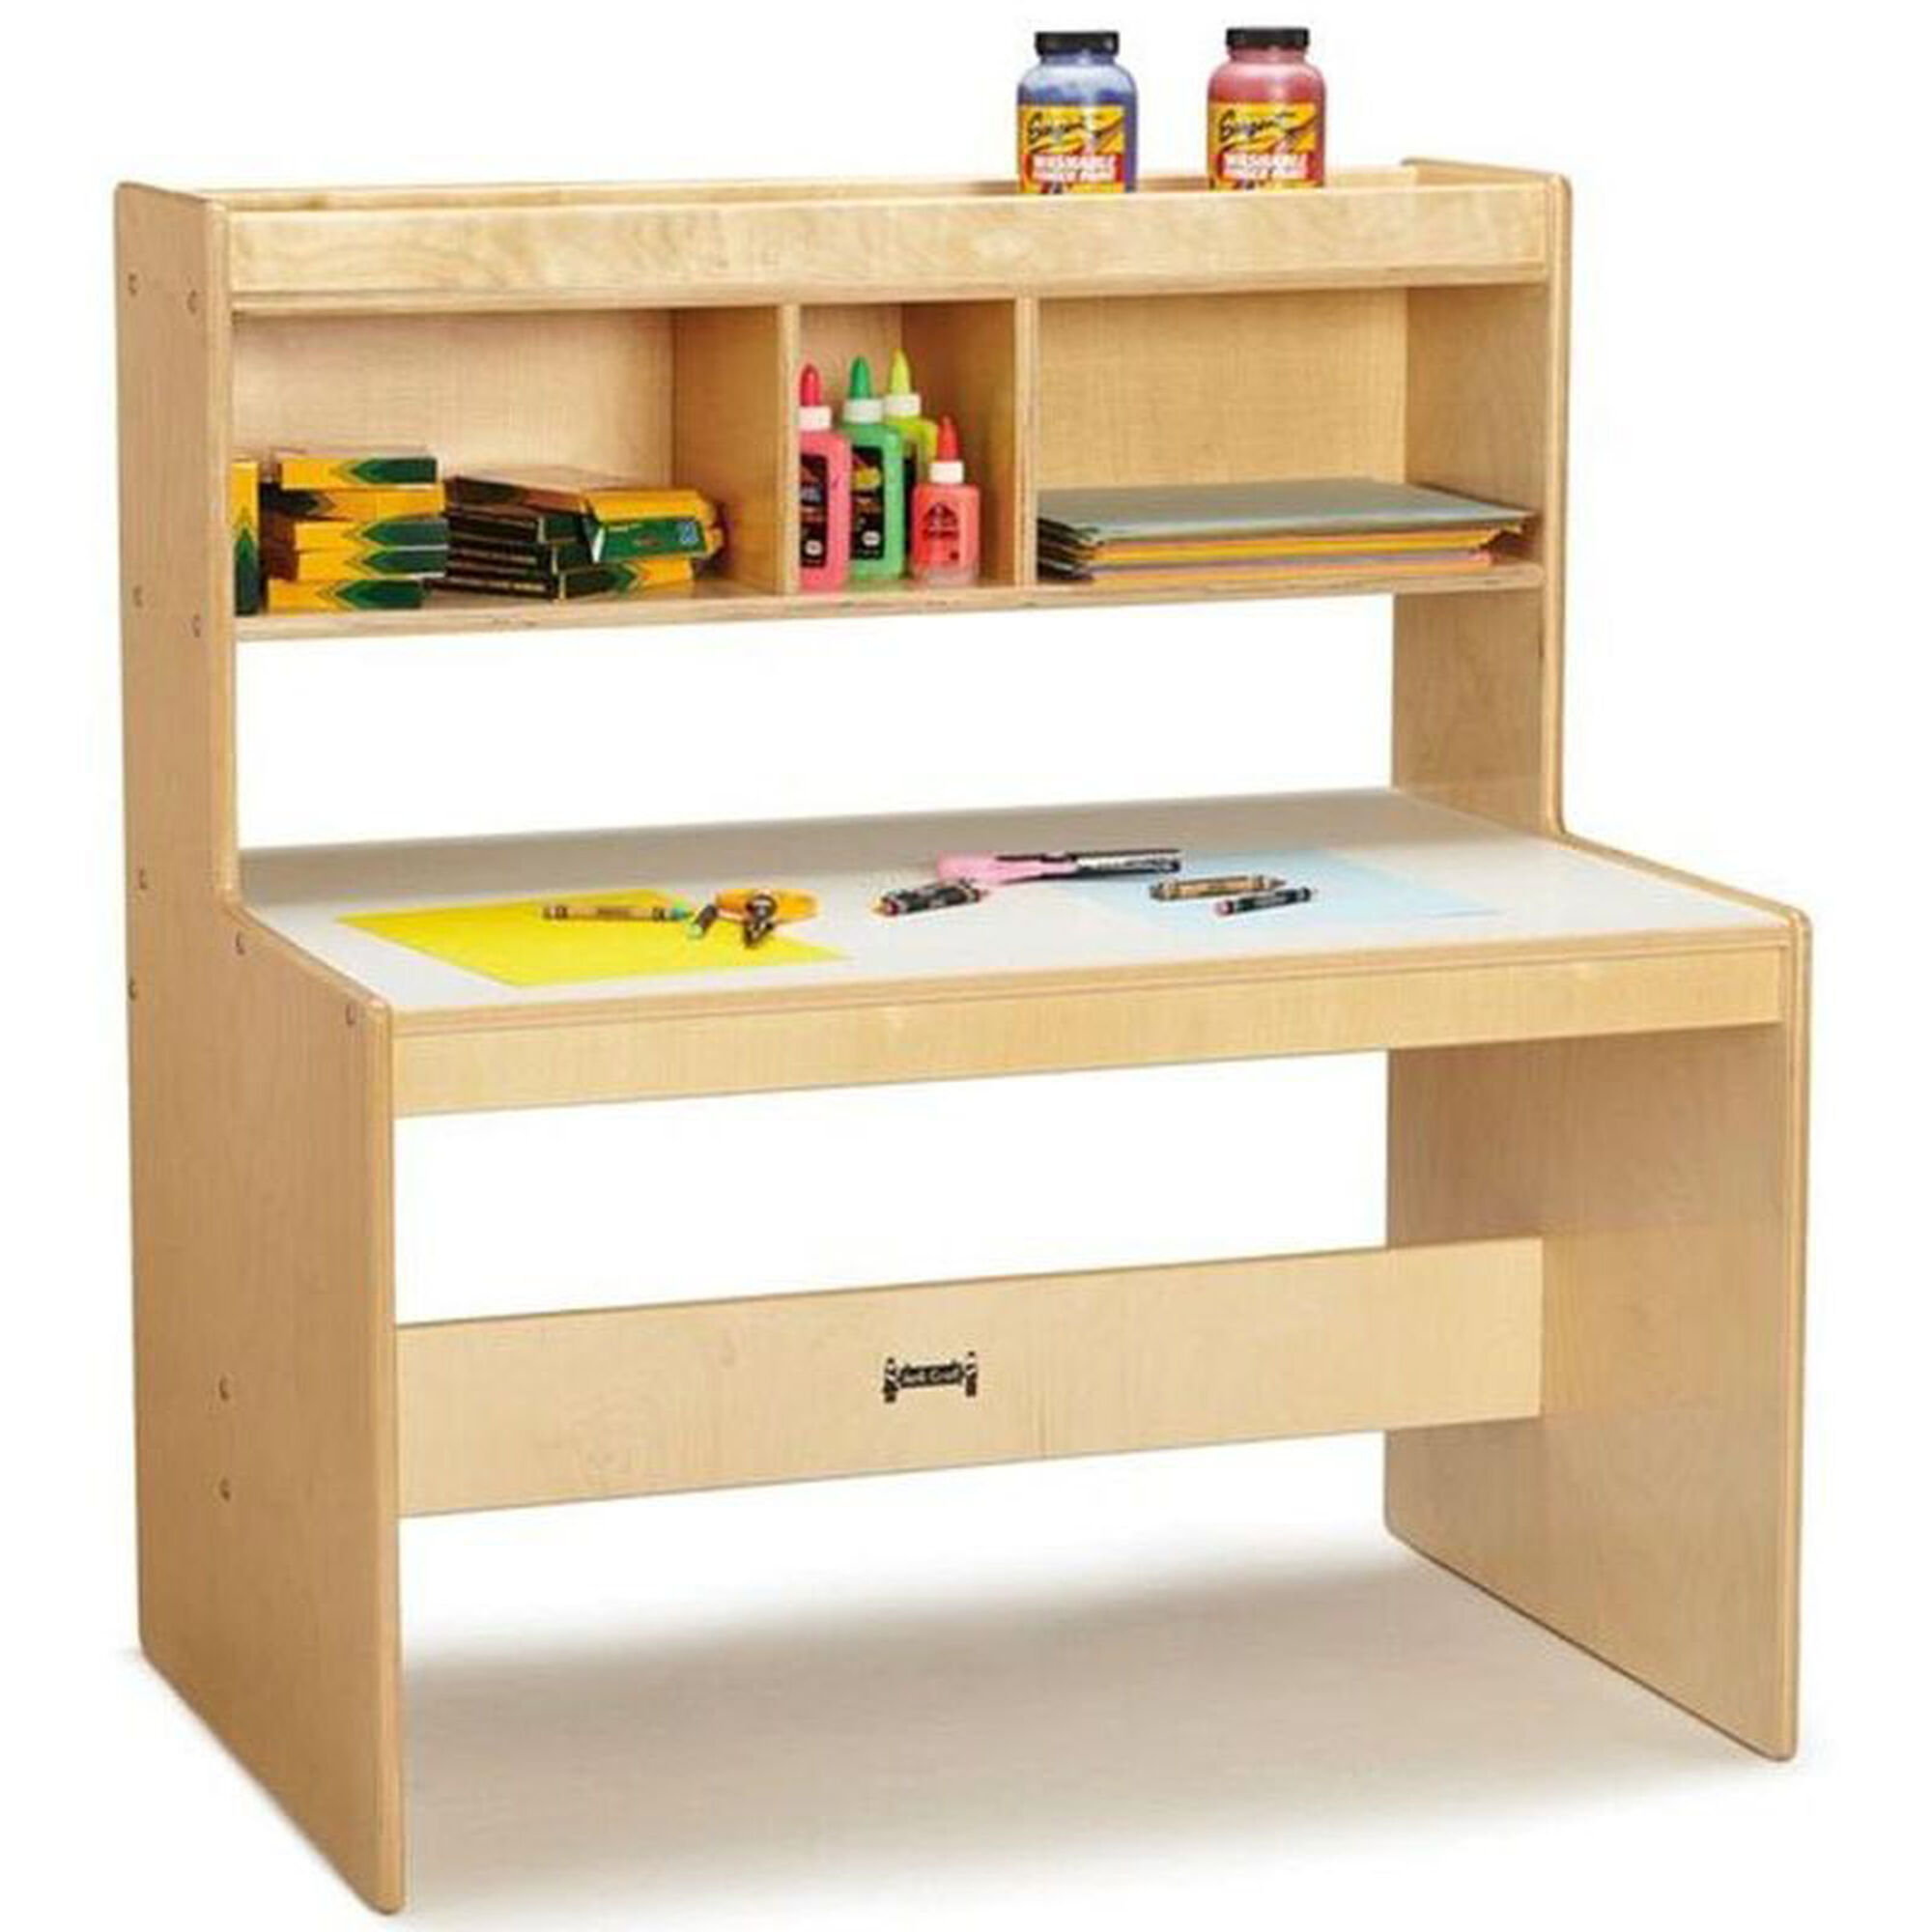 Wooden Dual Student Writing Desk with 21\'\'H Desktop - 36\'\'W x 24\'\'D x  38.5\'\'H